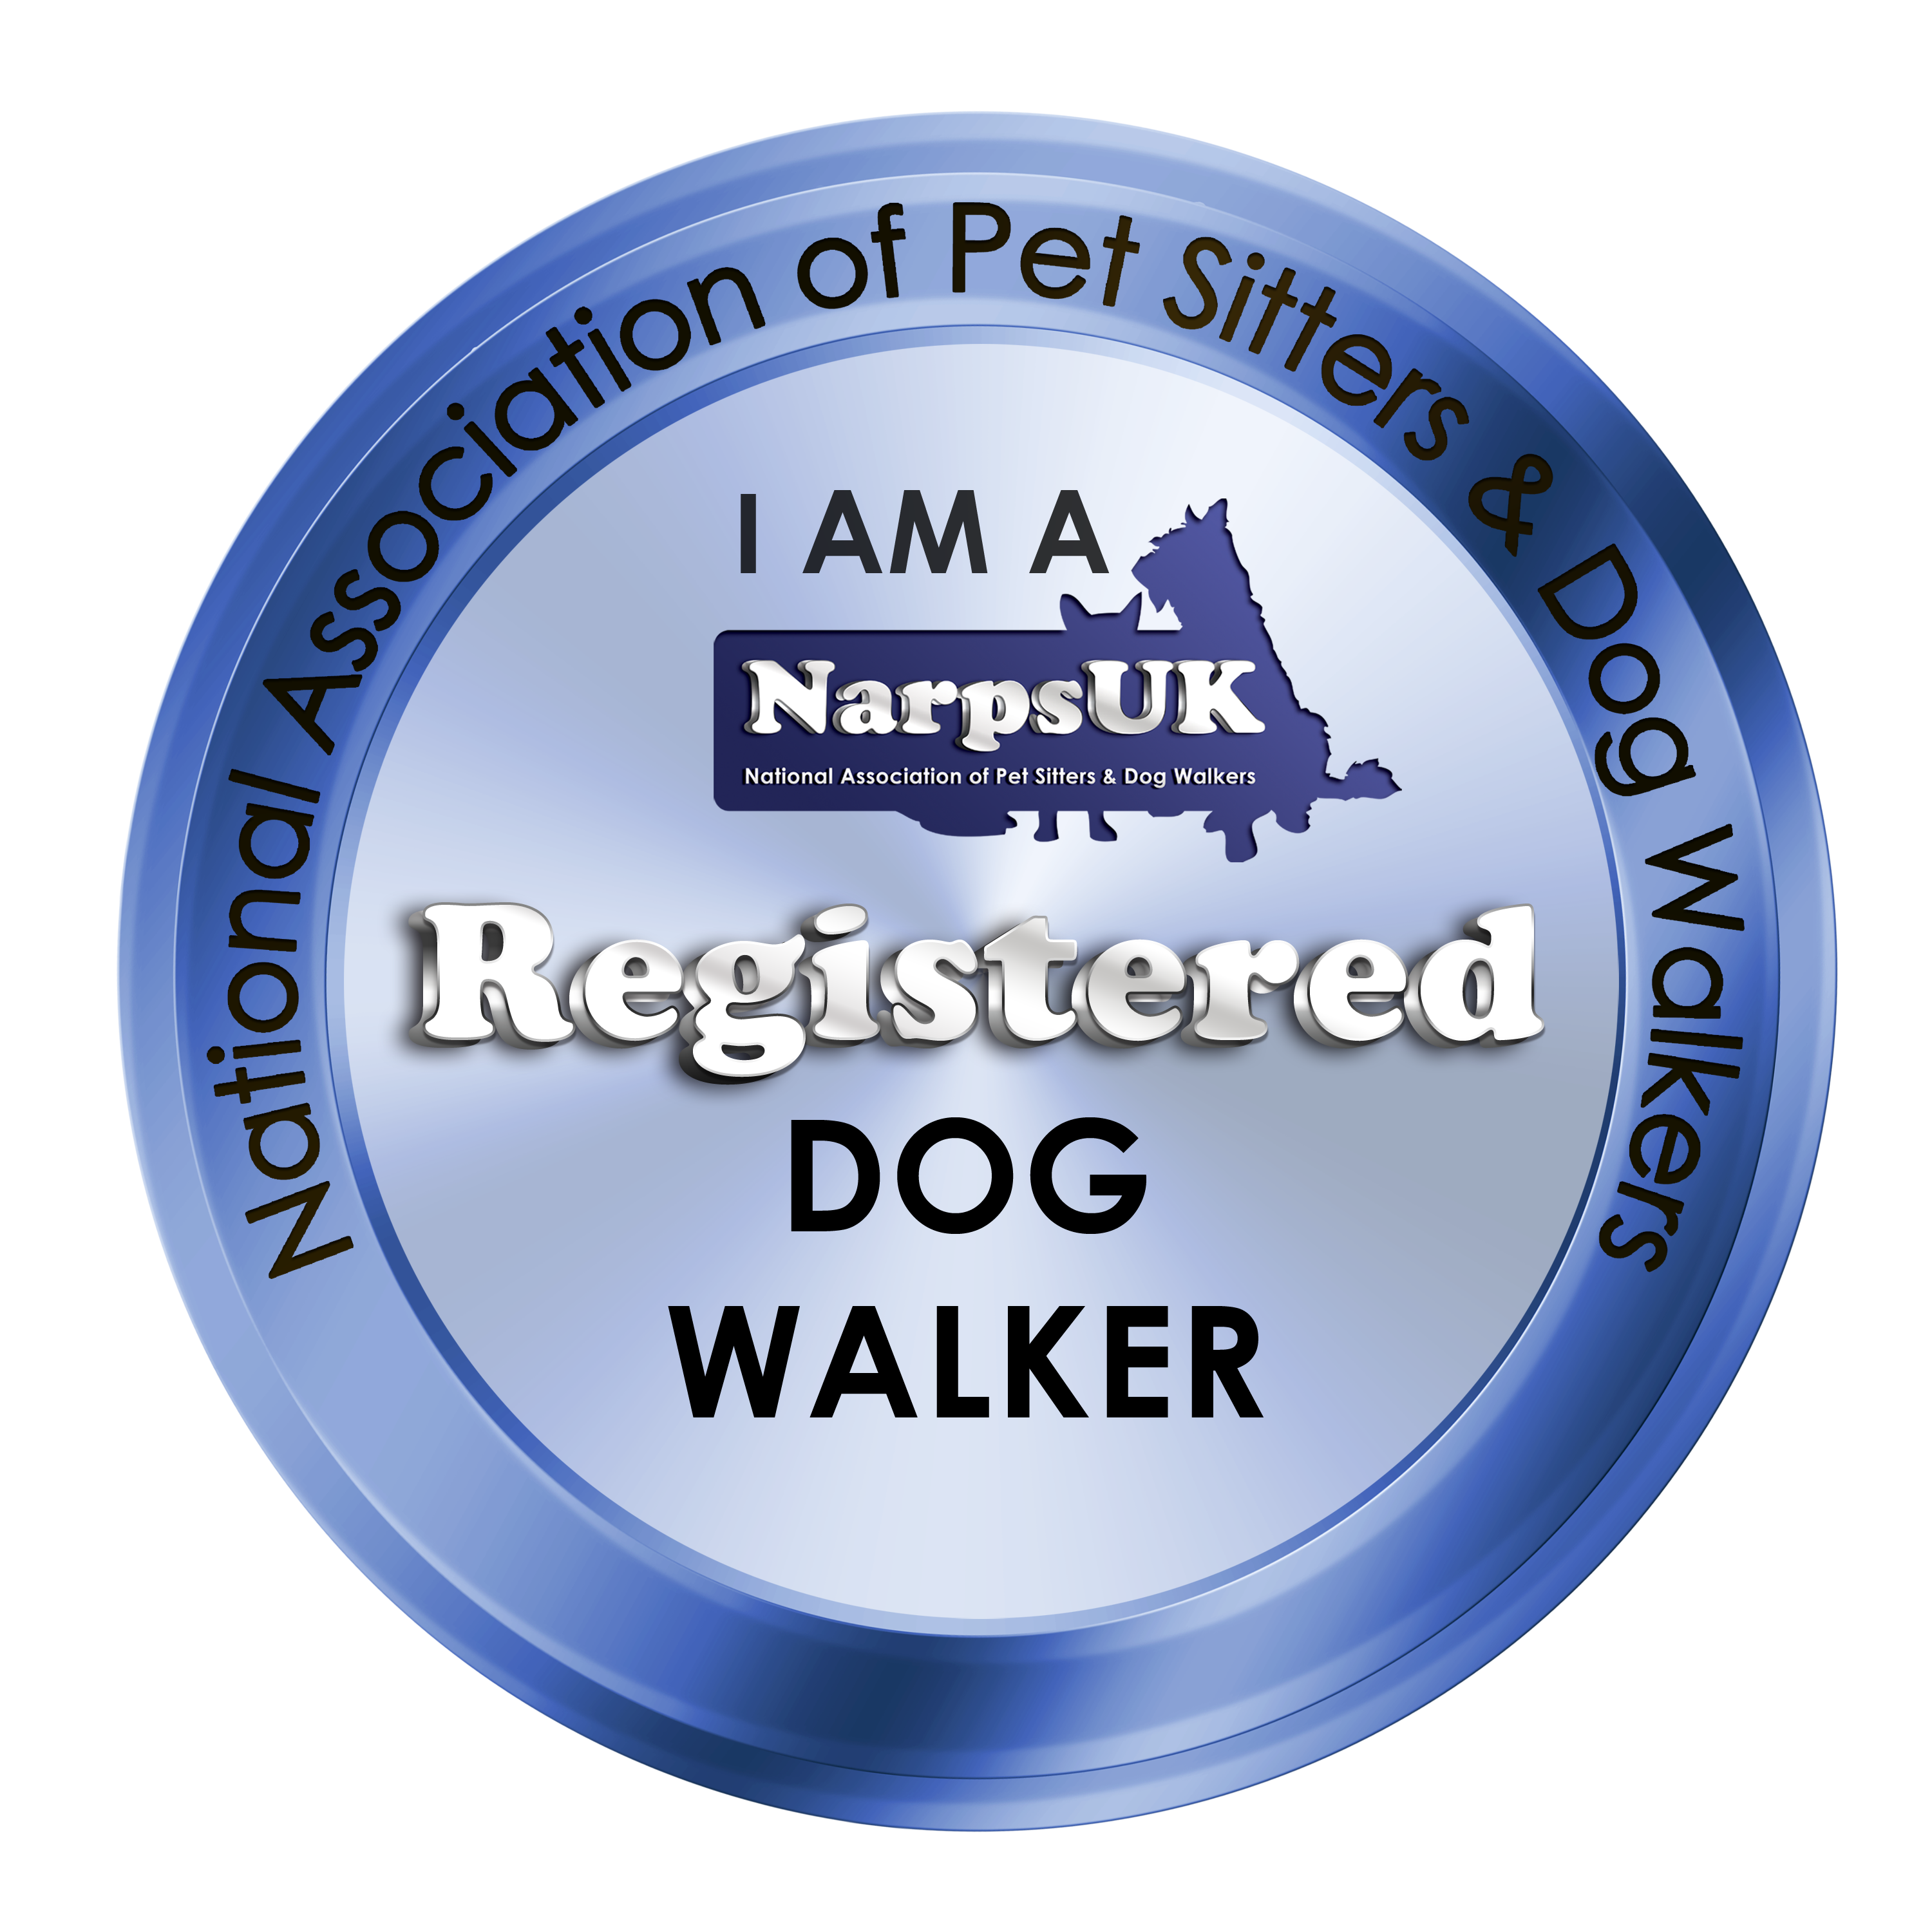 Registered Dog Walkers in Berks, Bucks and Oxon